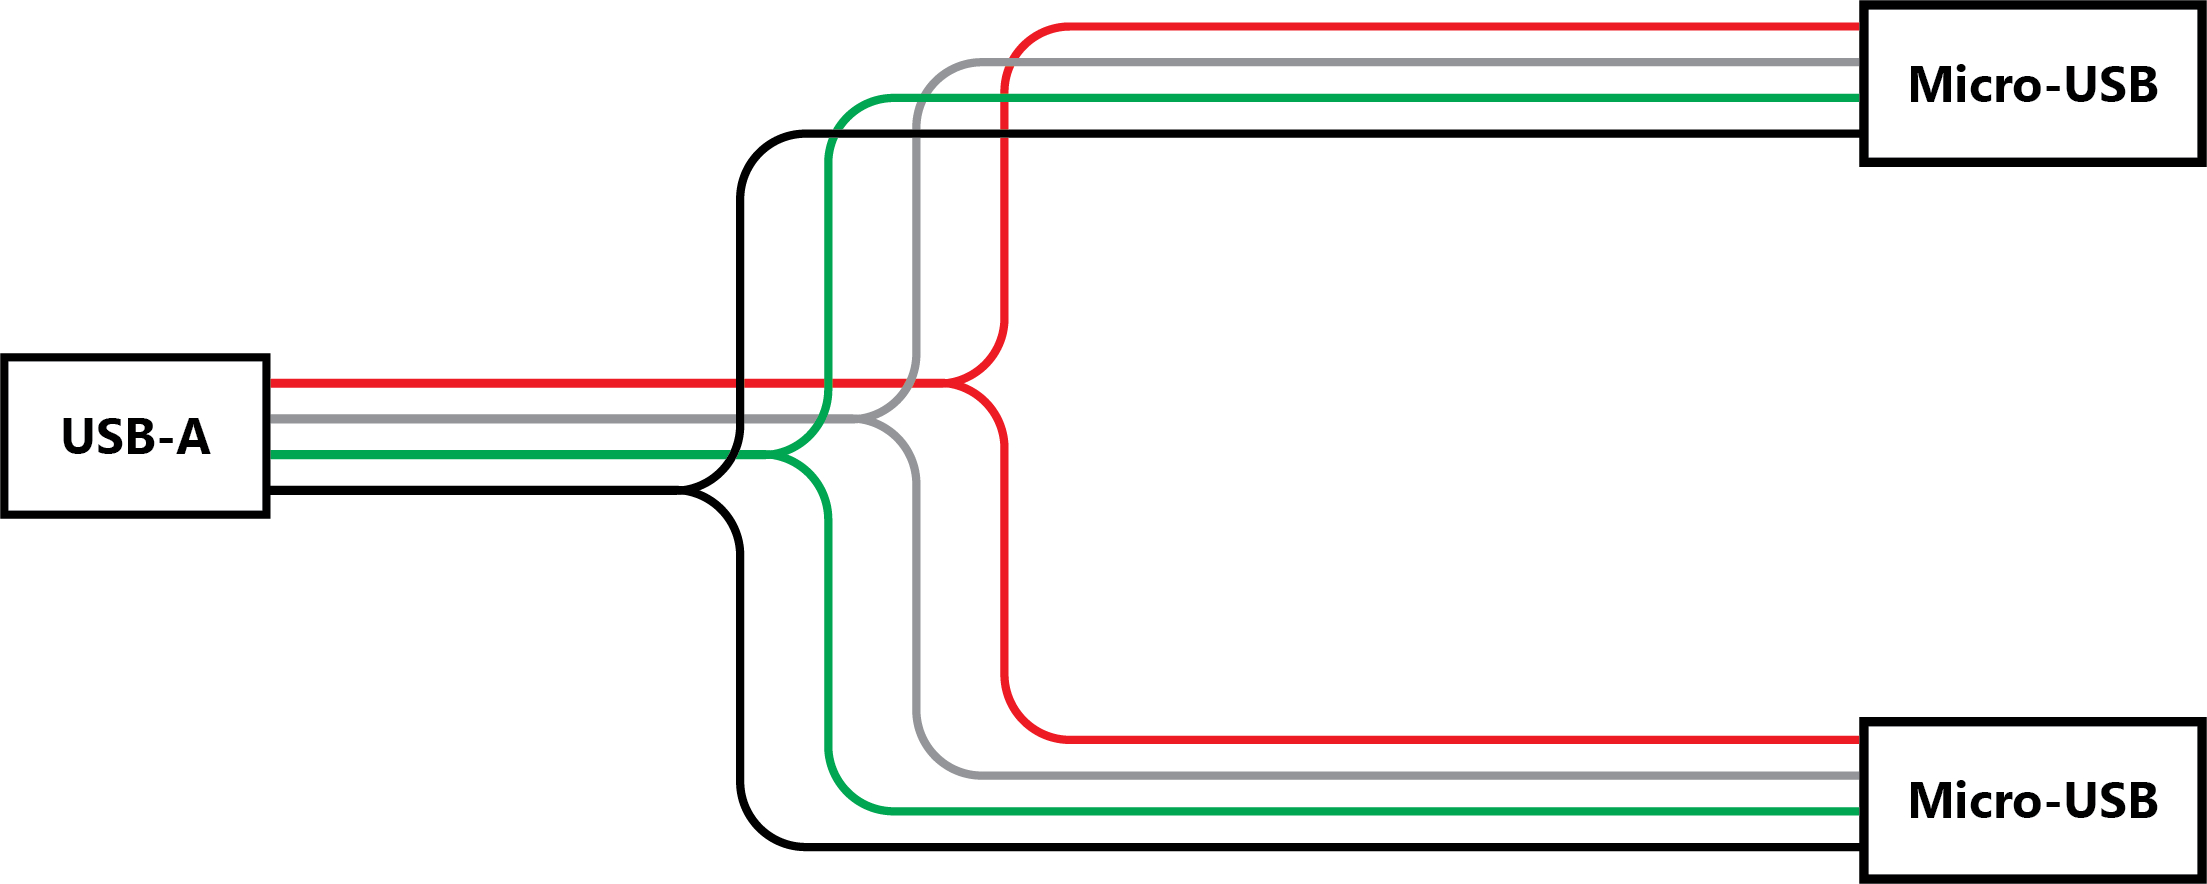 Wiring Diagram For Split Micro-Usb Cable? - Electrical Engineering - Wiring Diagram For Micro Usb Cable